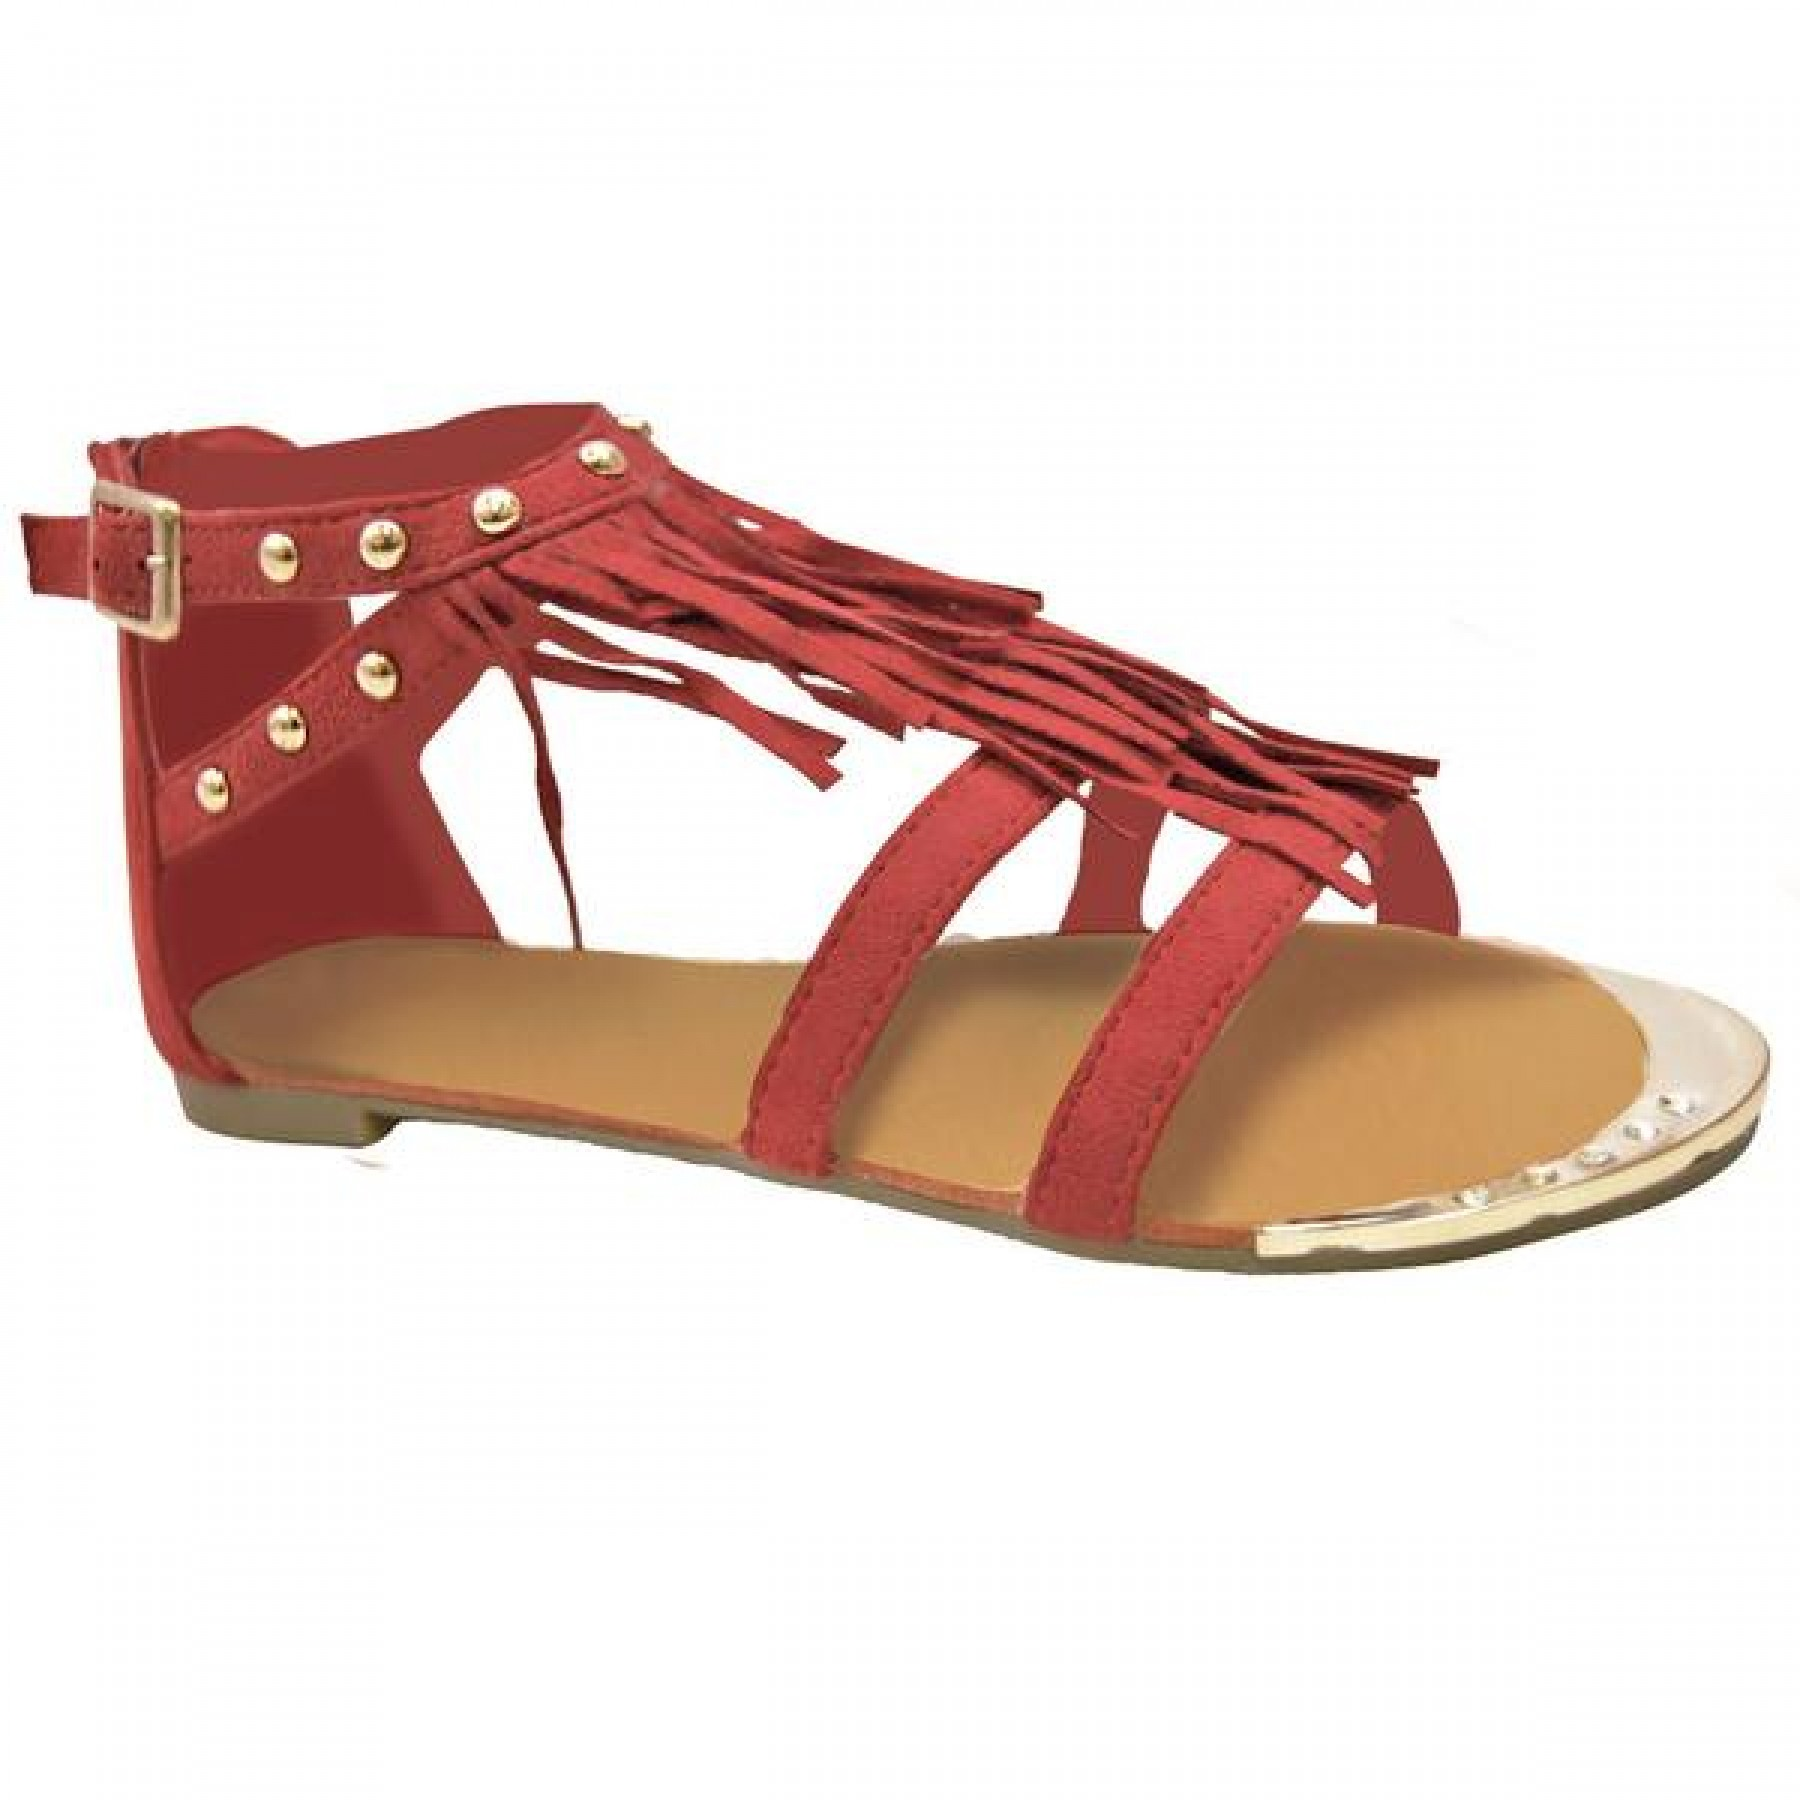 Women's Red Fenellaa Fringed Gladiator Sandal with Accent Studs